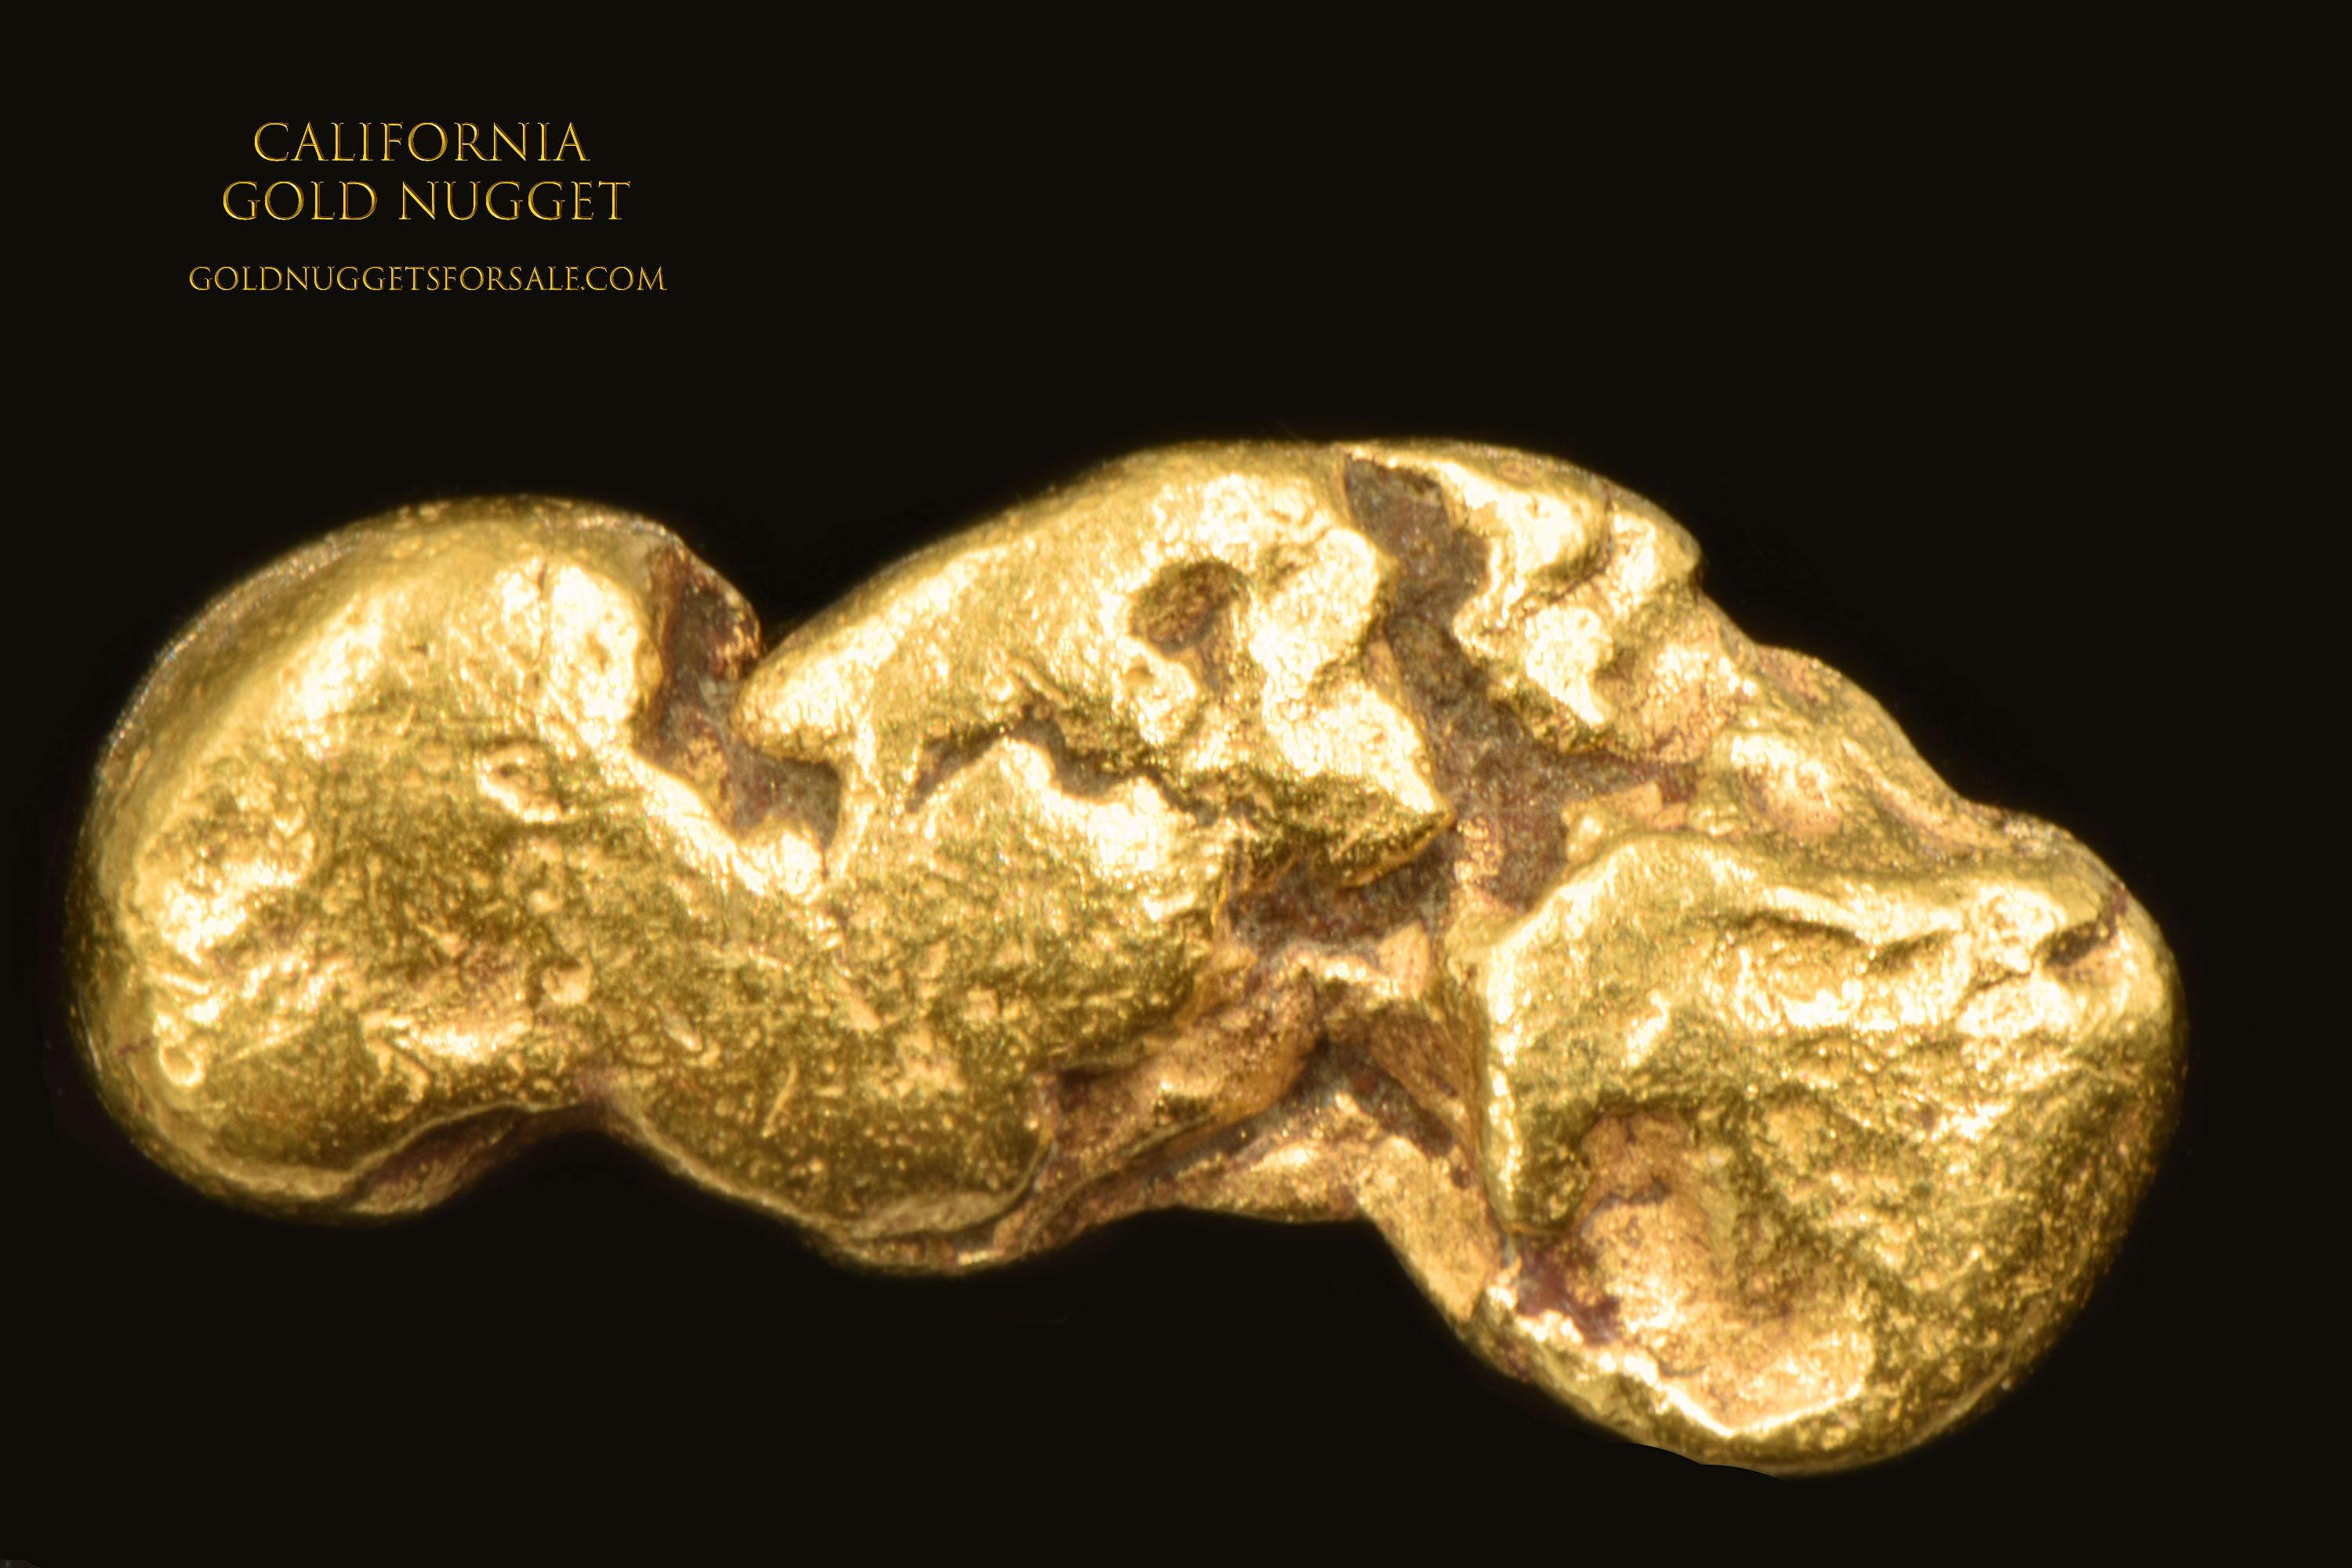 California Gold Nugget - Great price under $100